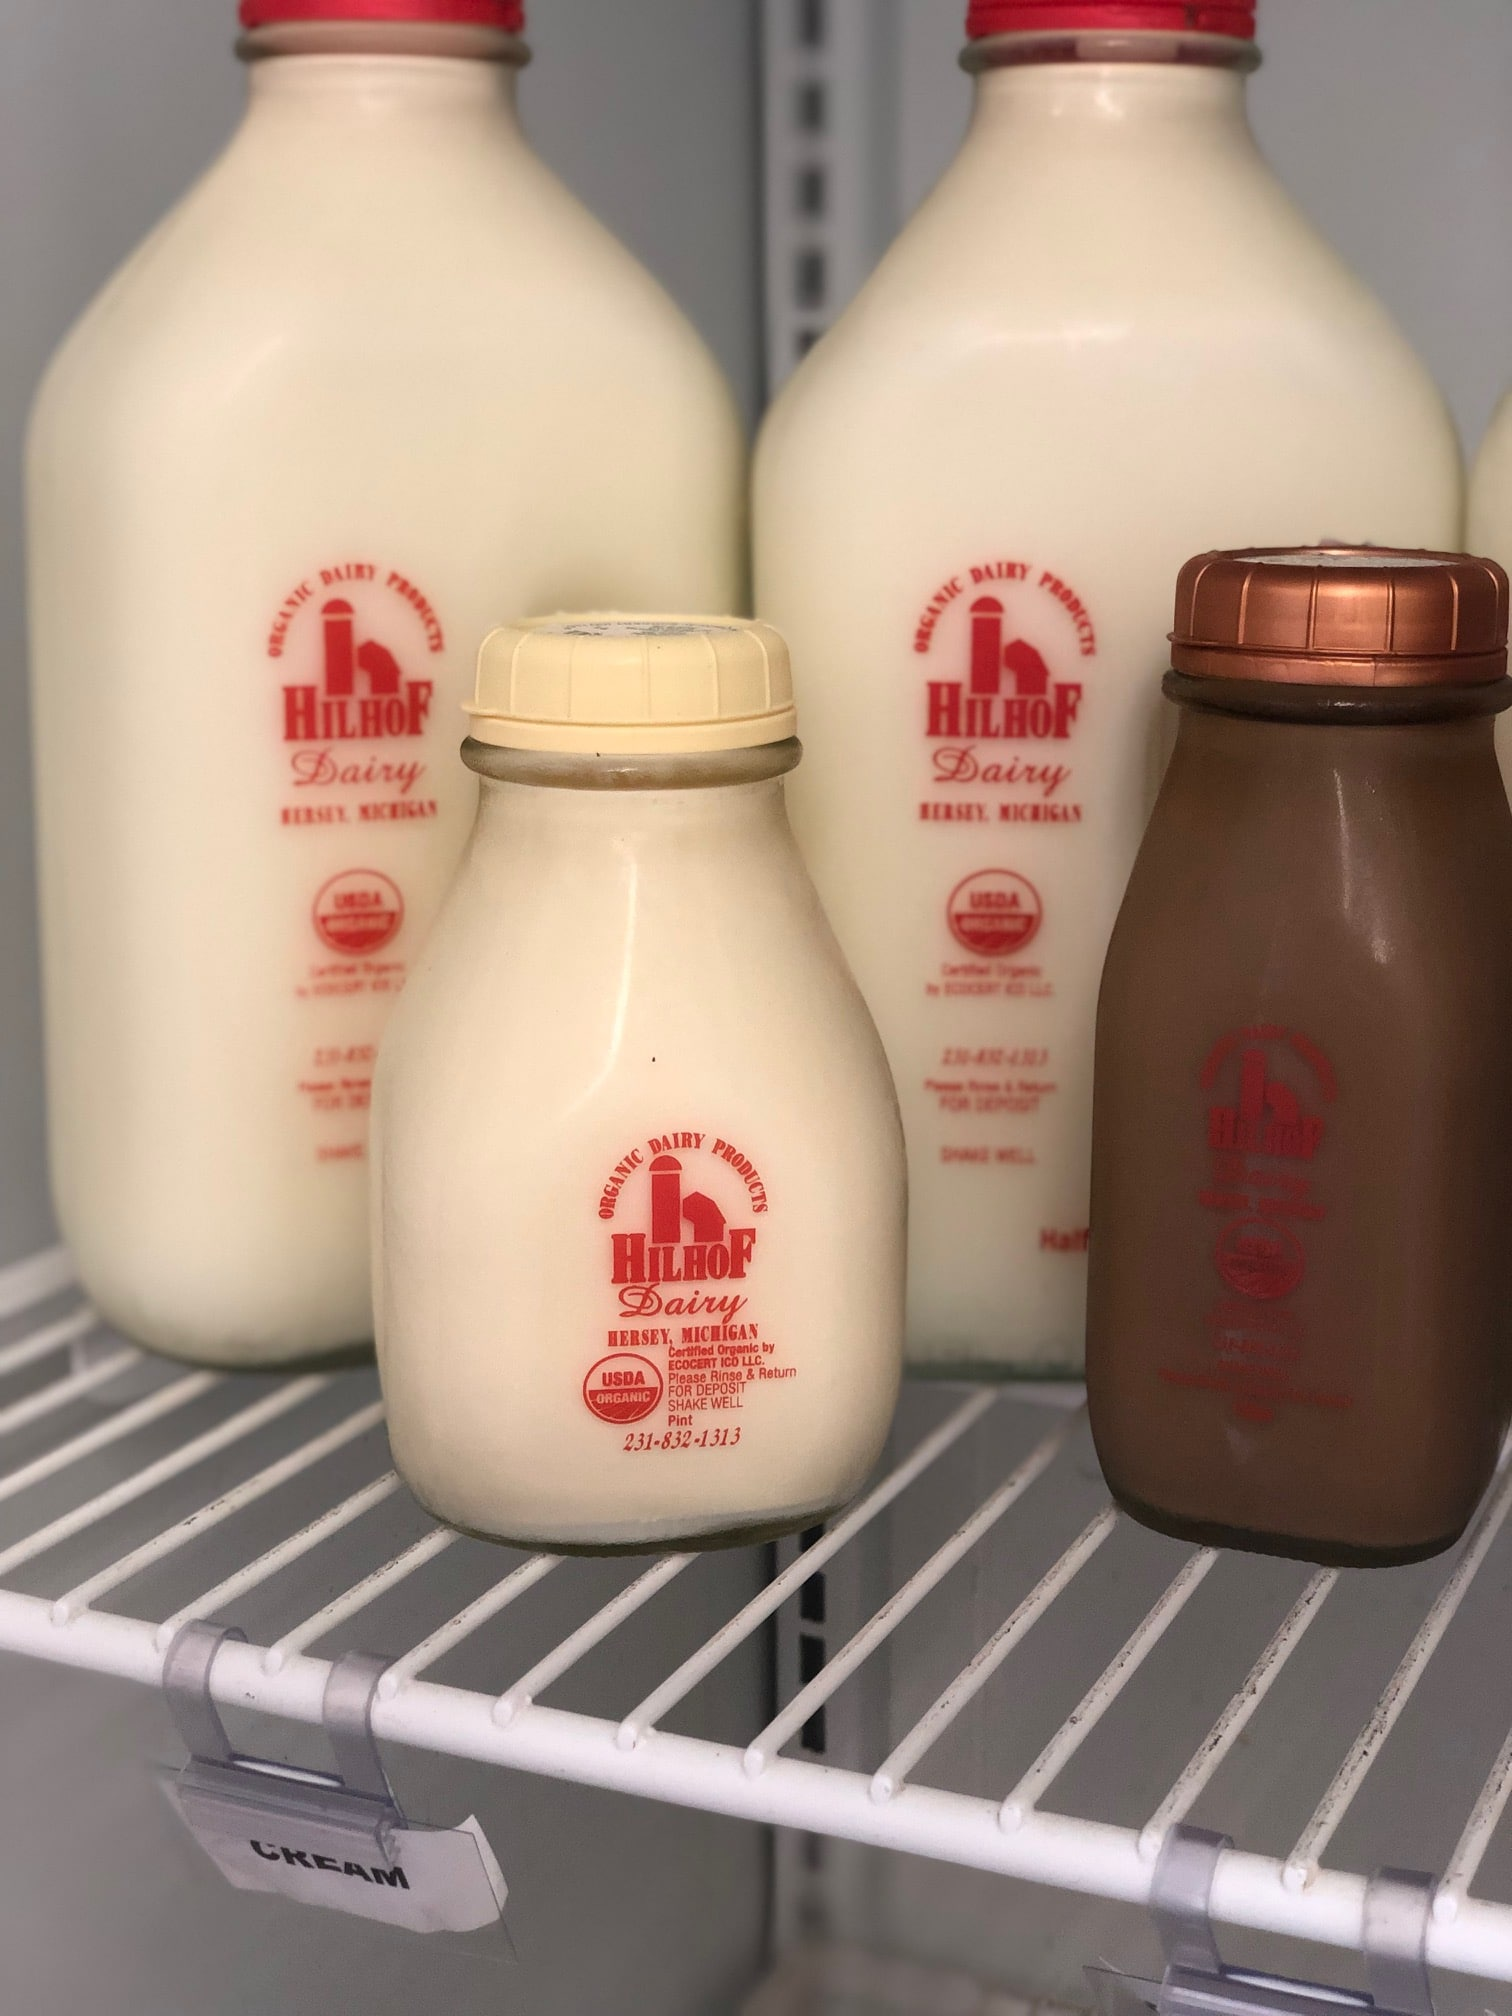 Organic Milk and Dairy Products from Michigan Farms